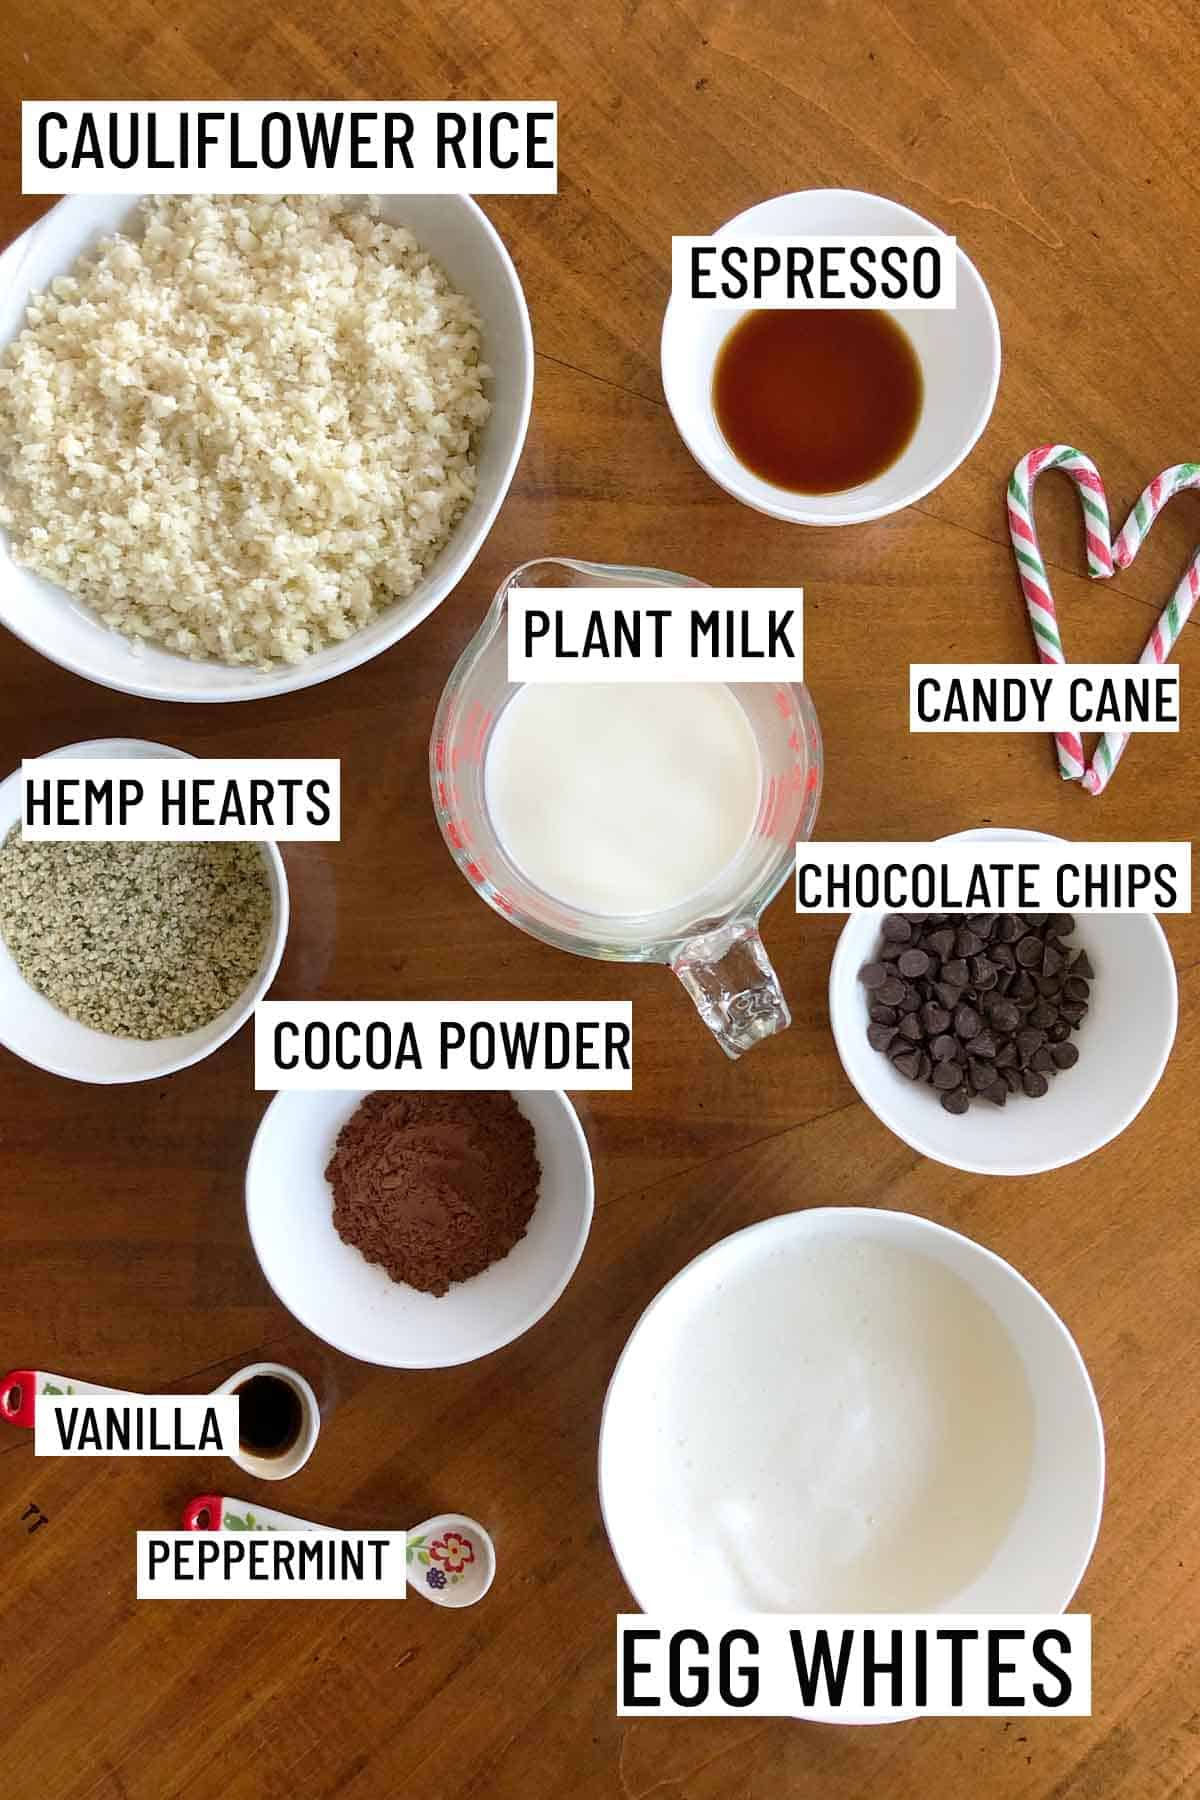 Birds eye view of portioned ingredients to make recipe including espresso, cauliflower rice, hemp hearts, plant milk, chocolate chips, candy canes, cocoa powder, egg whites, vanilla and peppermint extract.